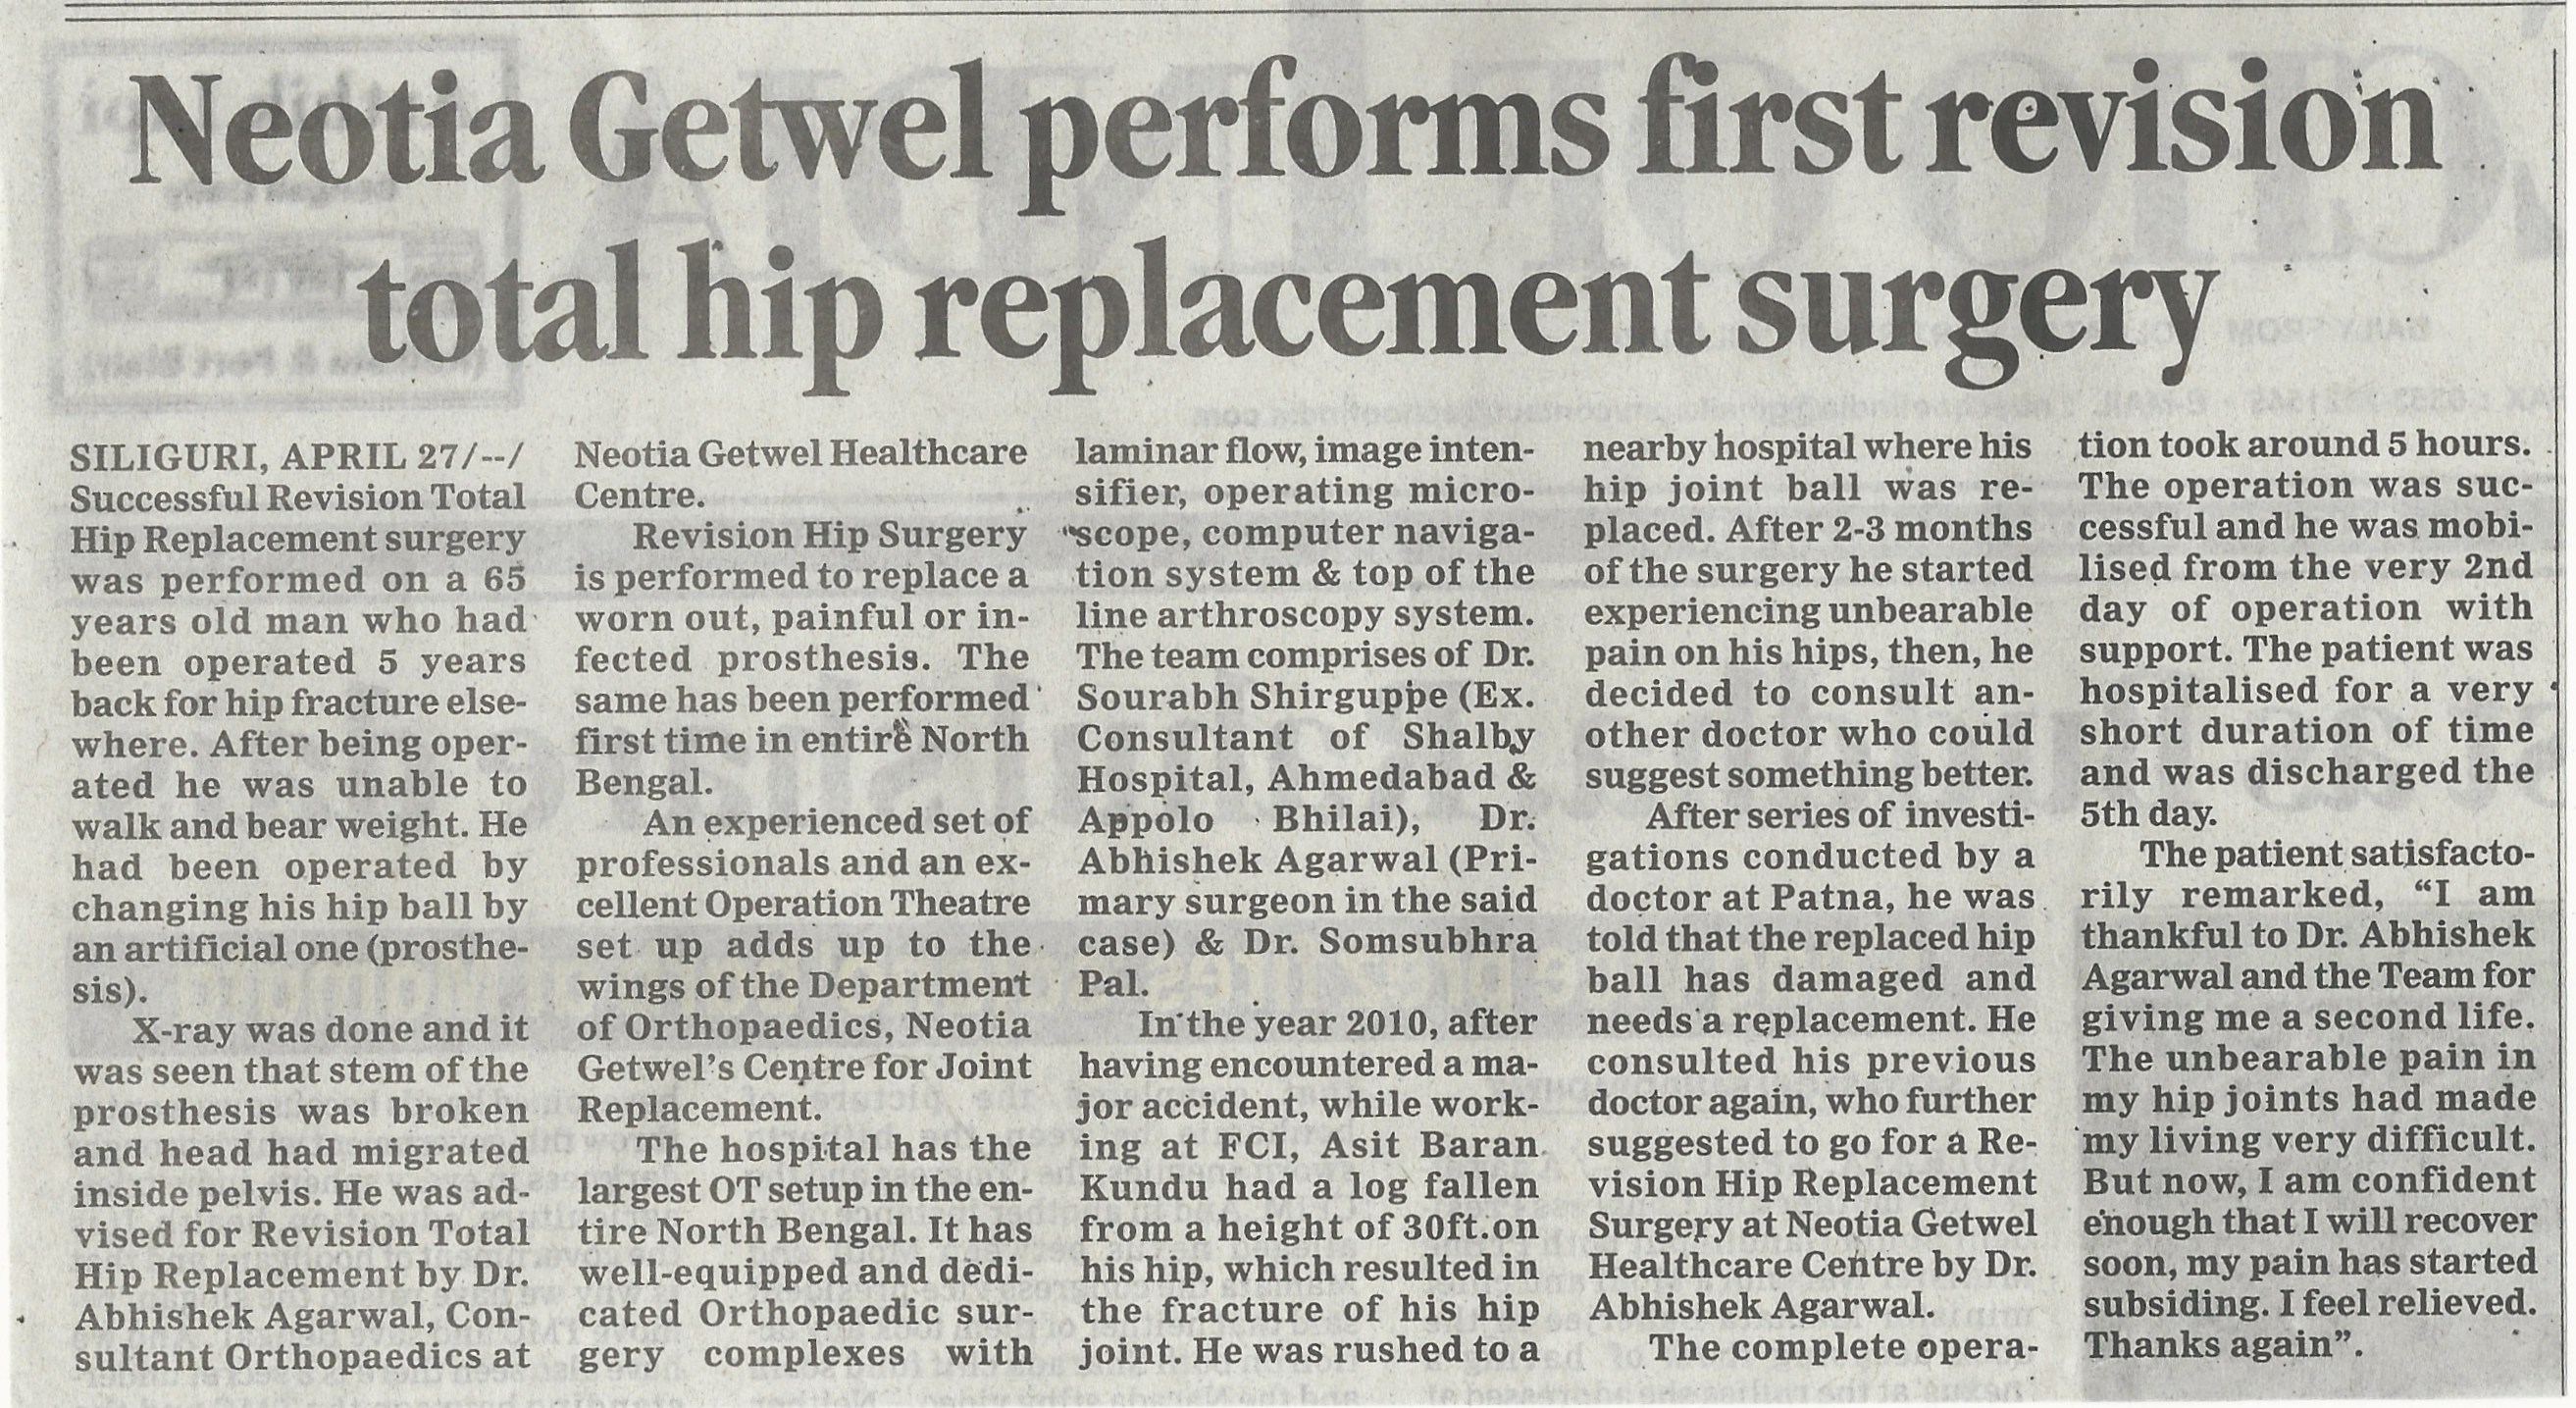 Neotia Getwel  performs first revision total hip replacement surgery